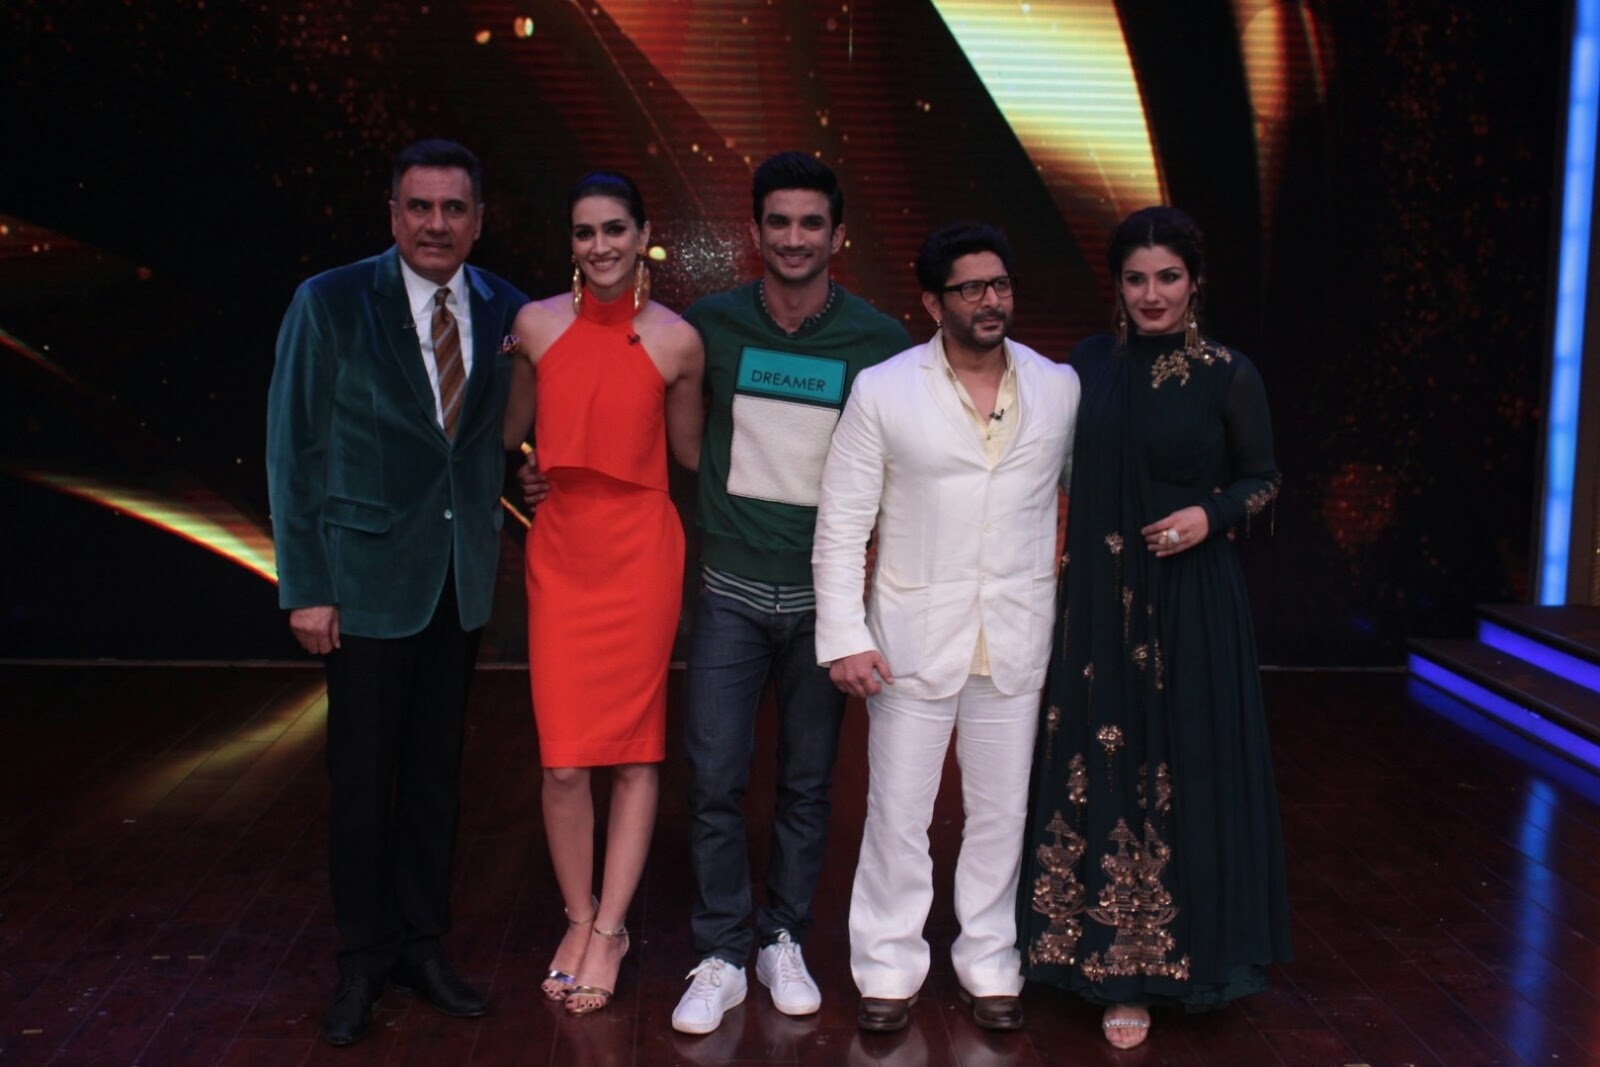 Kriti Sanon and Sushant Singh Promote Raabta on The Sets of Sabse Bada Kalakar